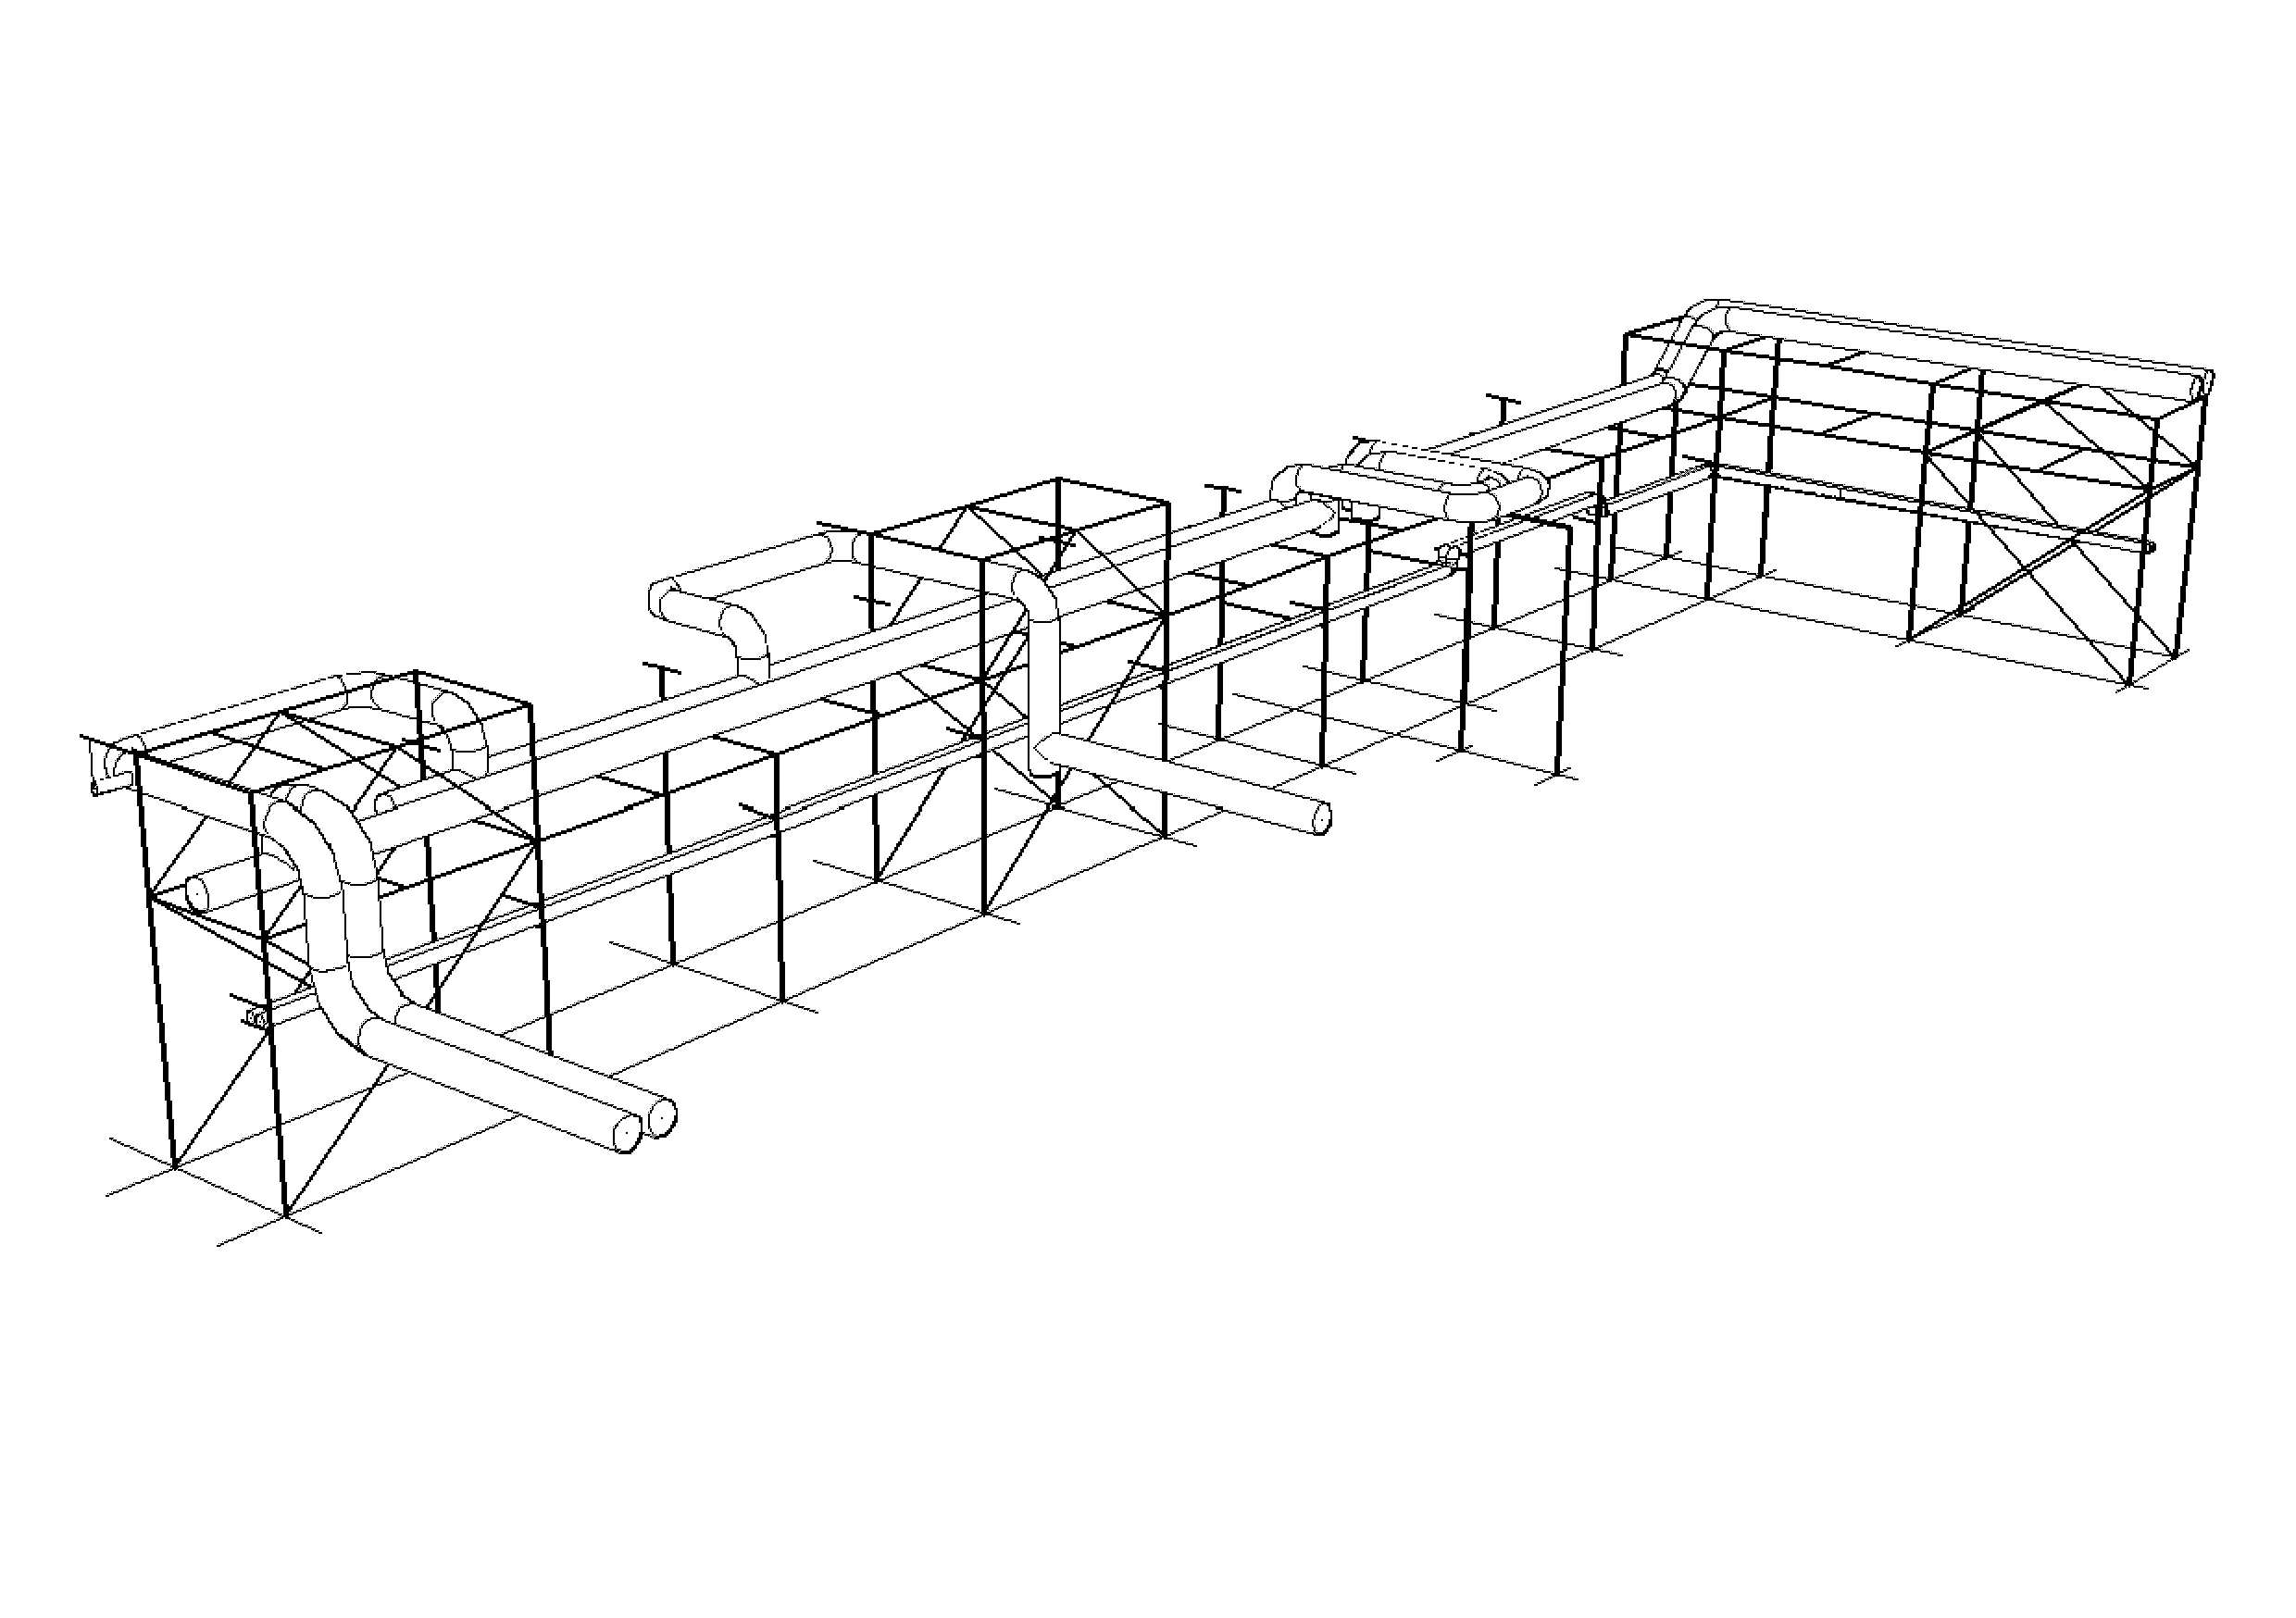 Designing And Construction Of Industrial Buildings